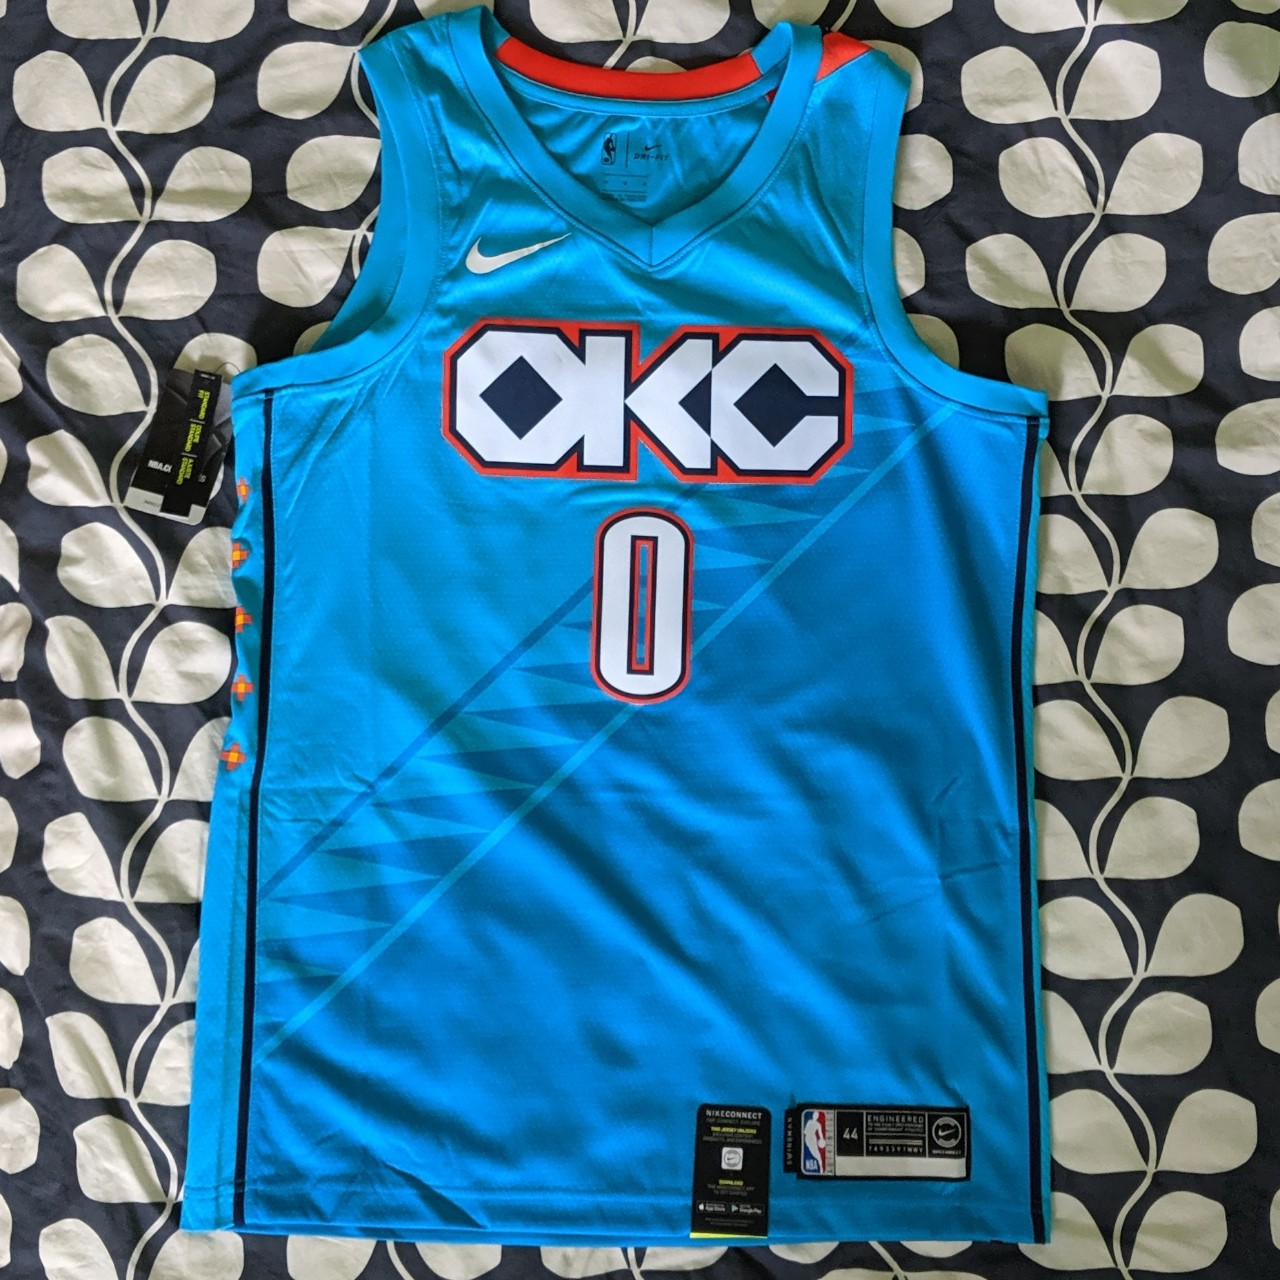 reputable site 327c0 cc198 Nike nba jersey, Oklahoma City thunder Russel... - Depop